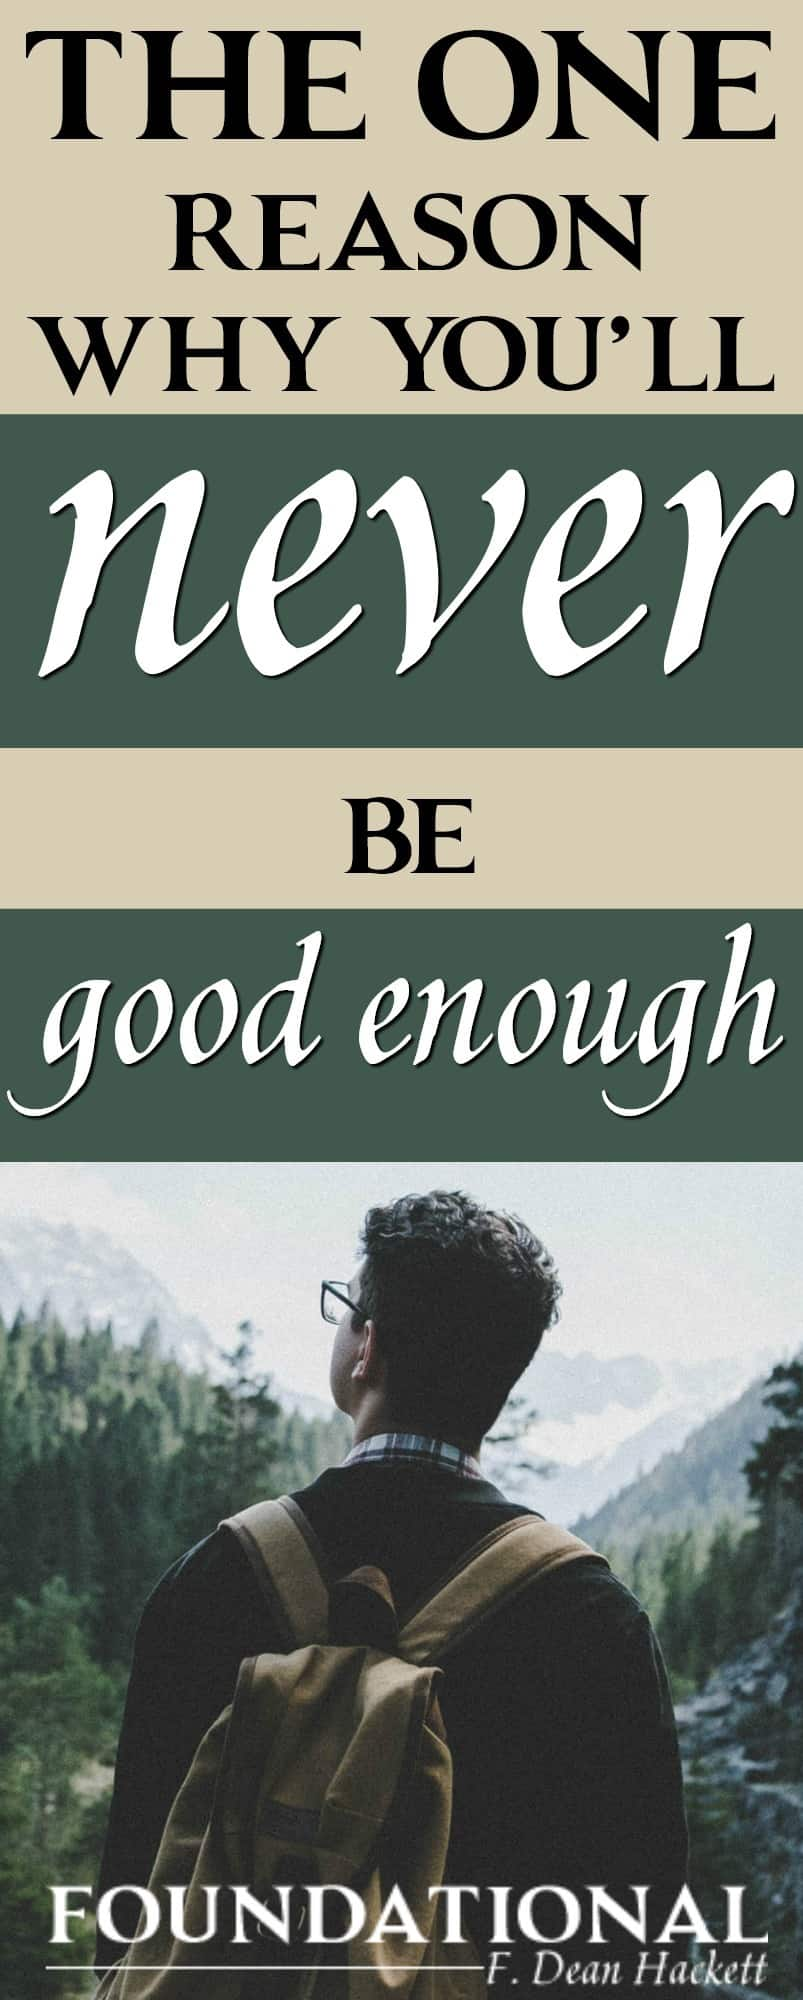 Most people in all religions are doing their very best to try and earn their way to Heaven by good works.Many in the Christian faith are doing their best to keep the Ten Commandments. But there is one reason why you'll never be good enough.